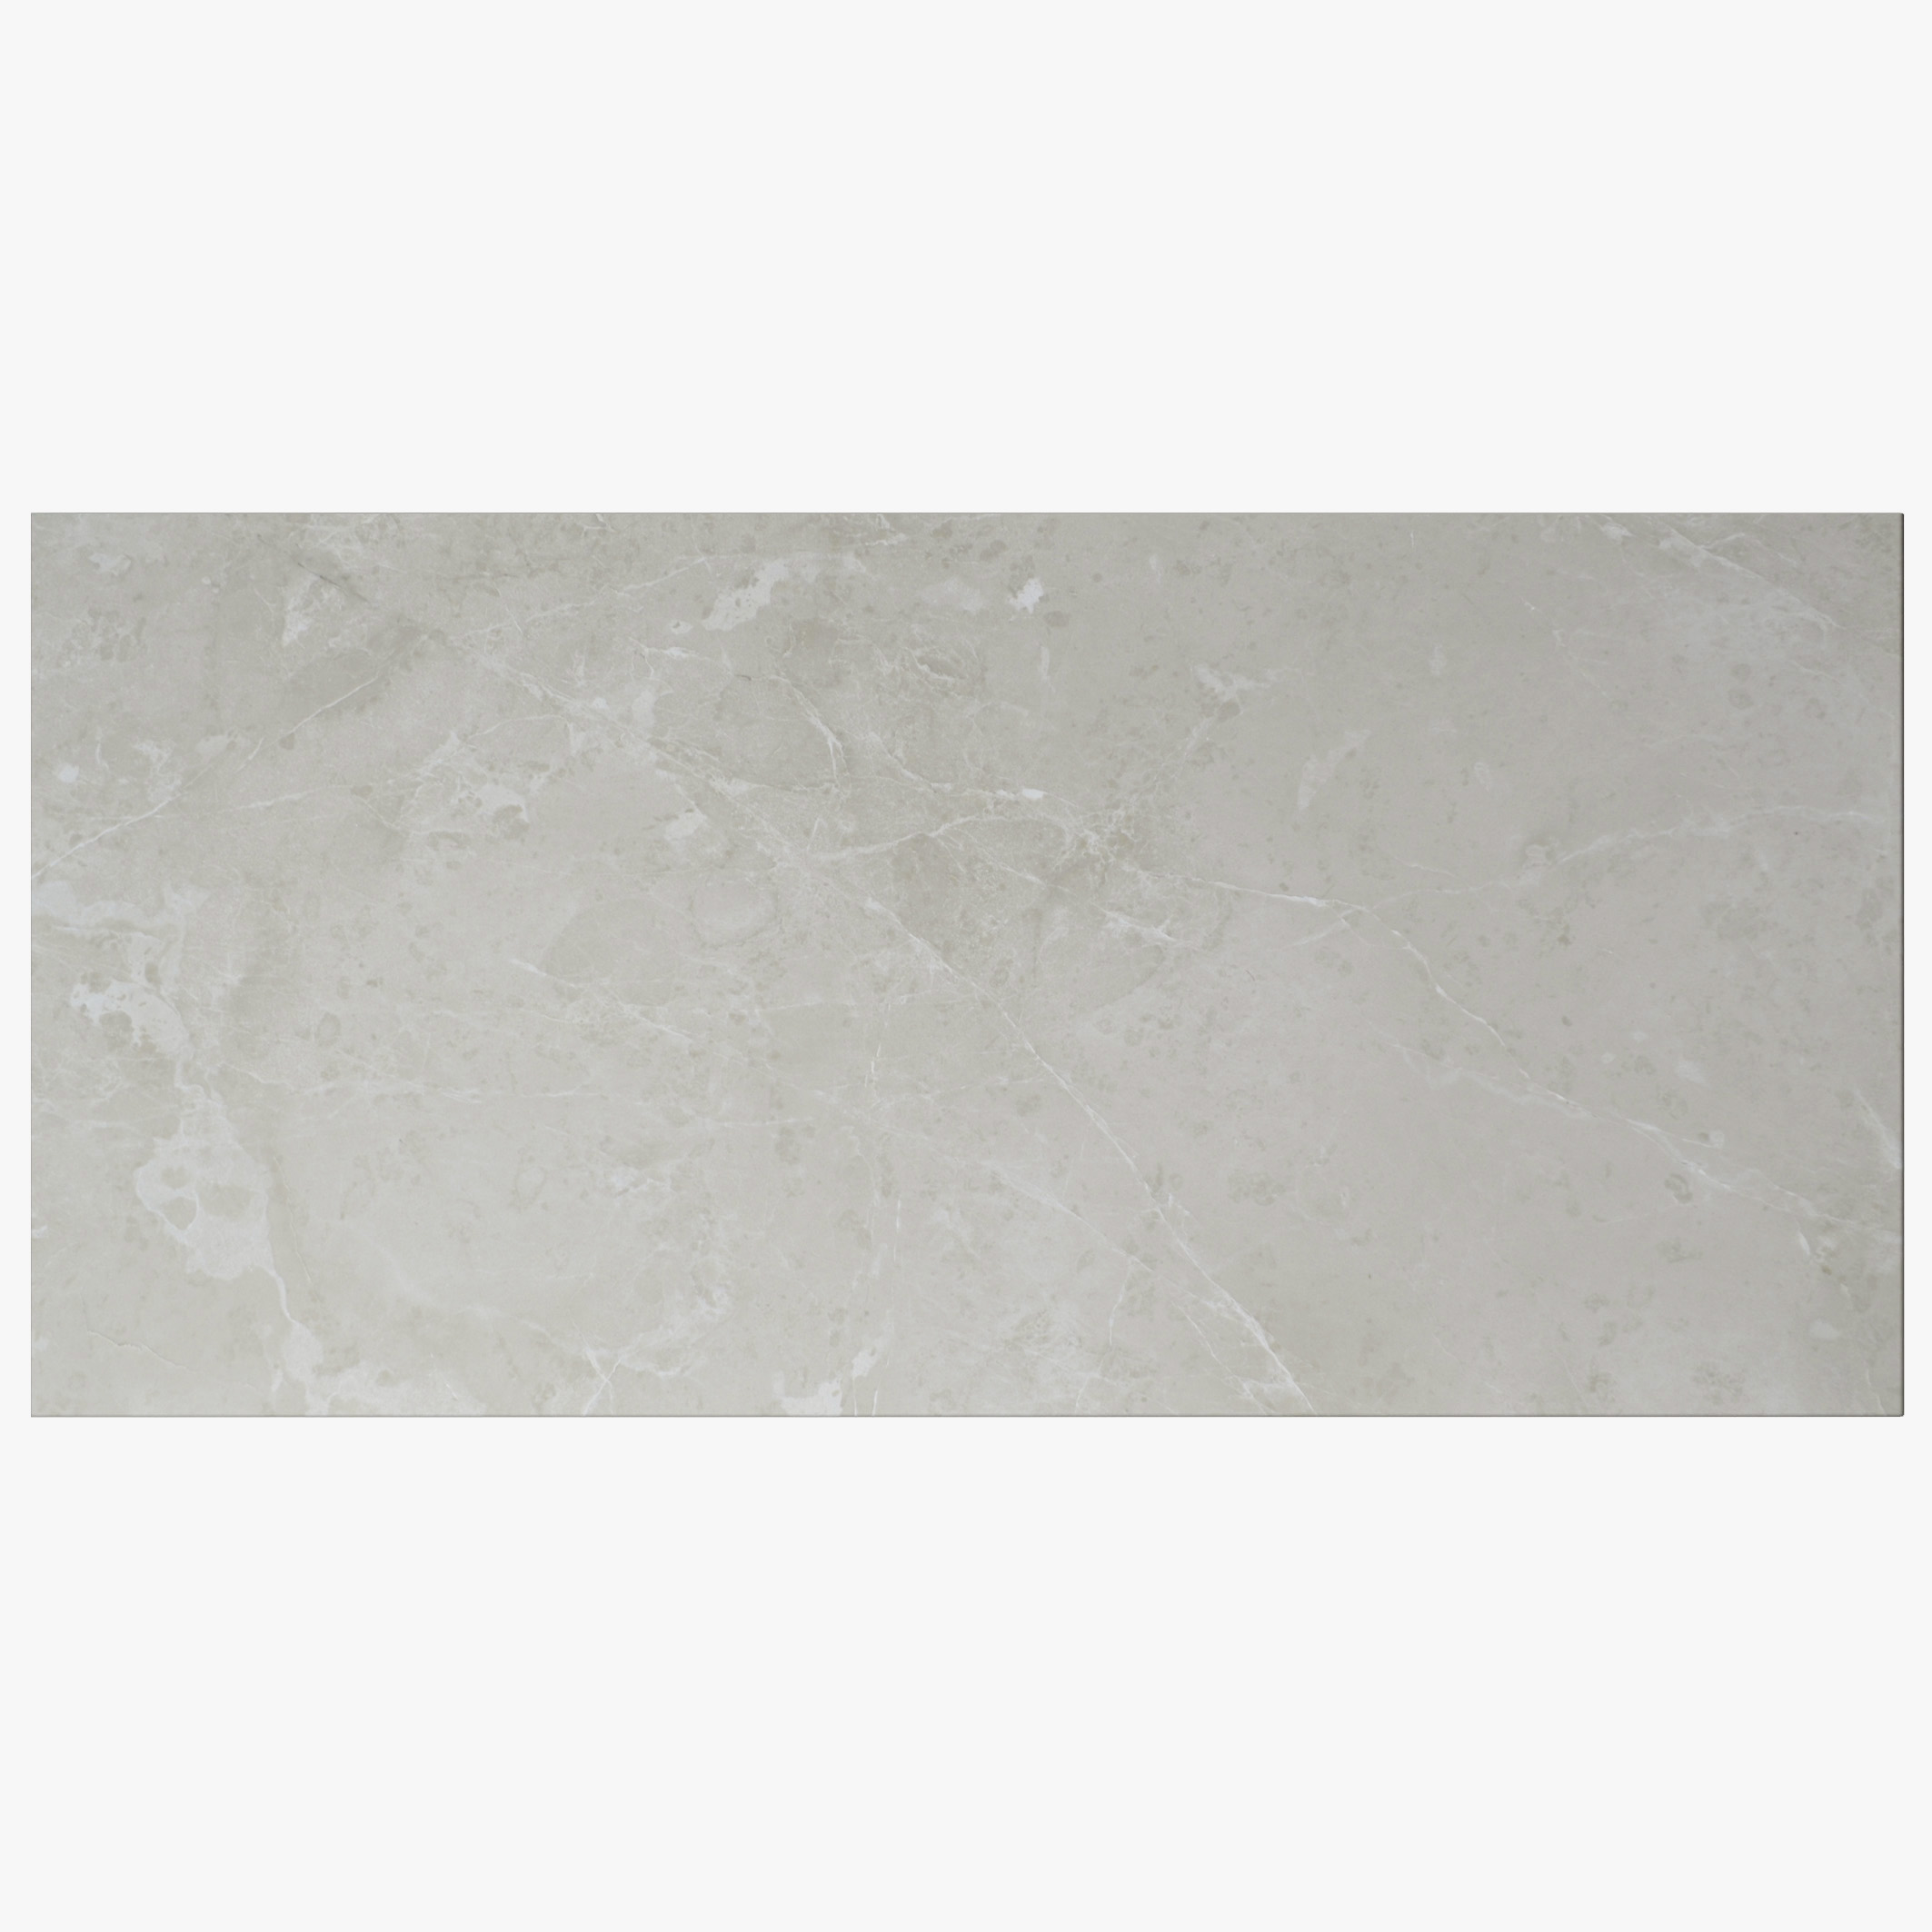 Botticino Beige Polished Marble Tiles 18x36 -marble sale-Atlantic Stone Source